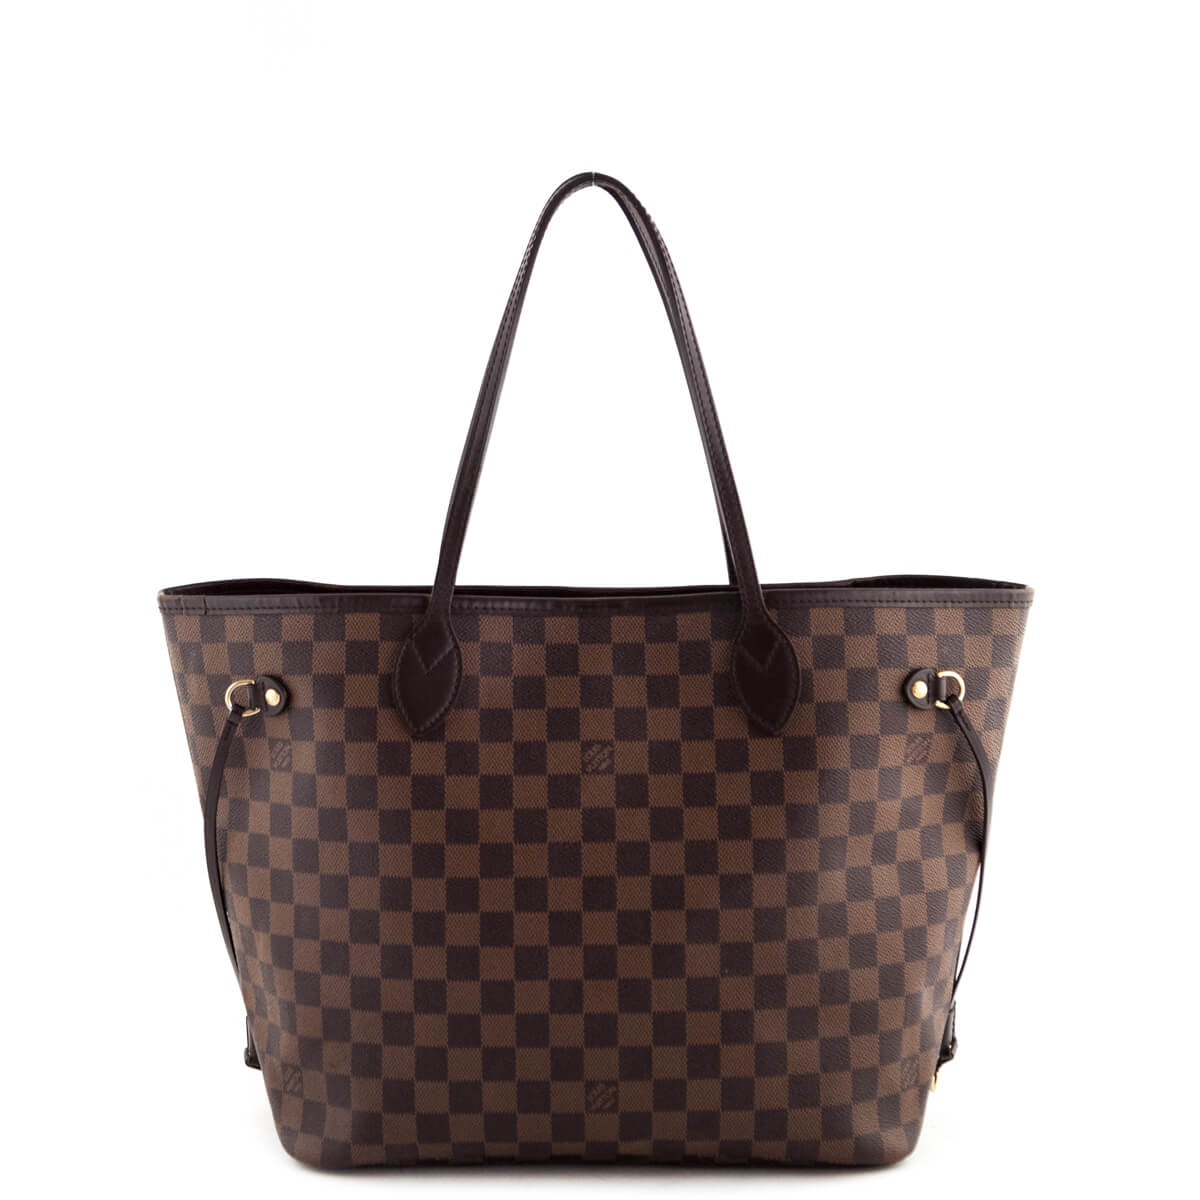 241d65353d64 Louis Vuitton Damier Ebene Neverfull MM - LOVE that BAG - Preowned Authentic  Designer Handbags ...